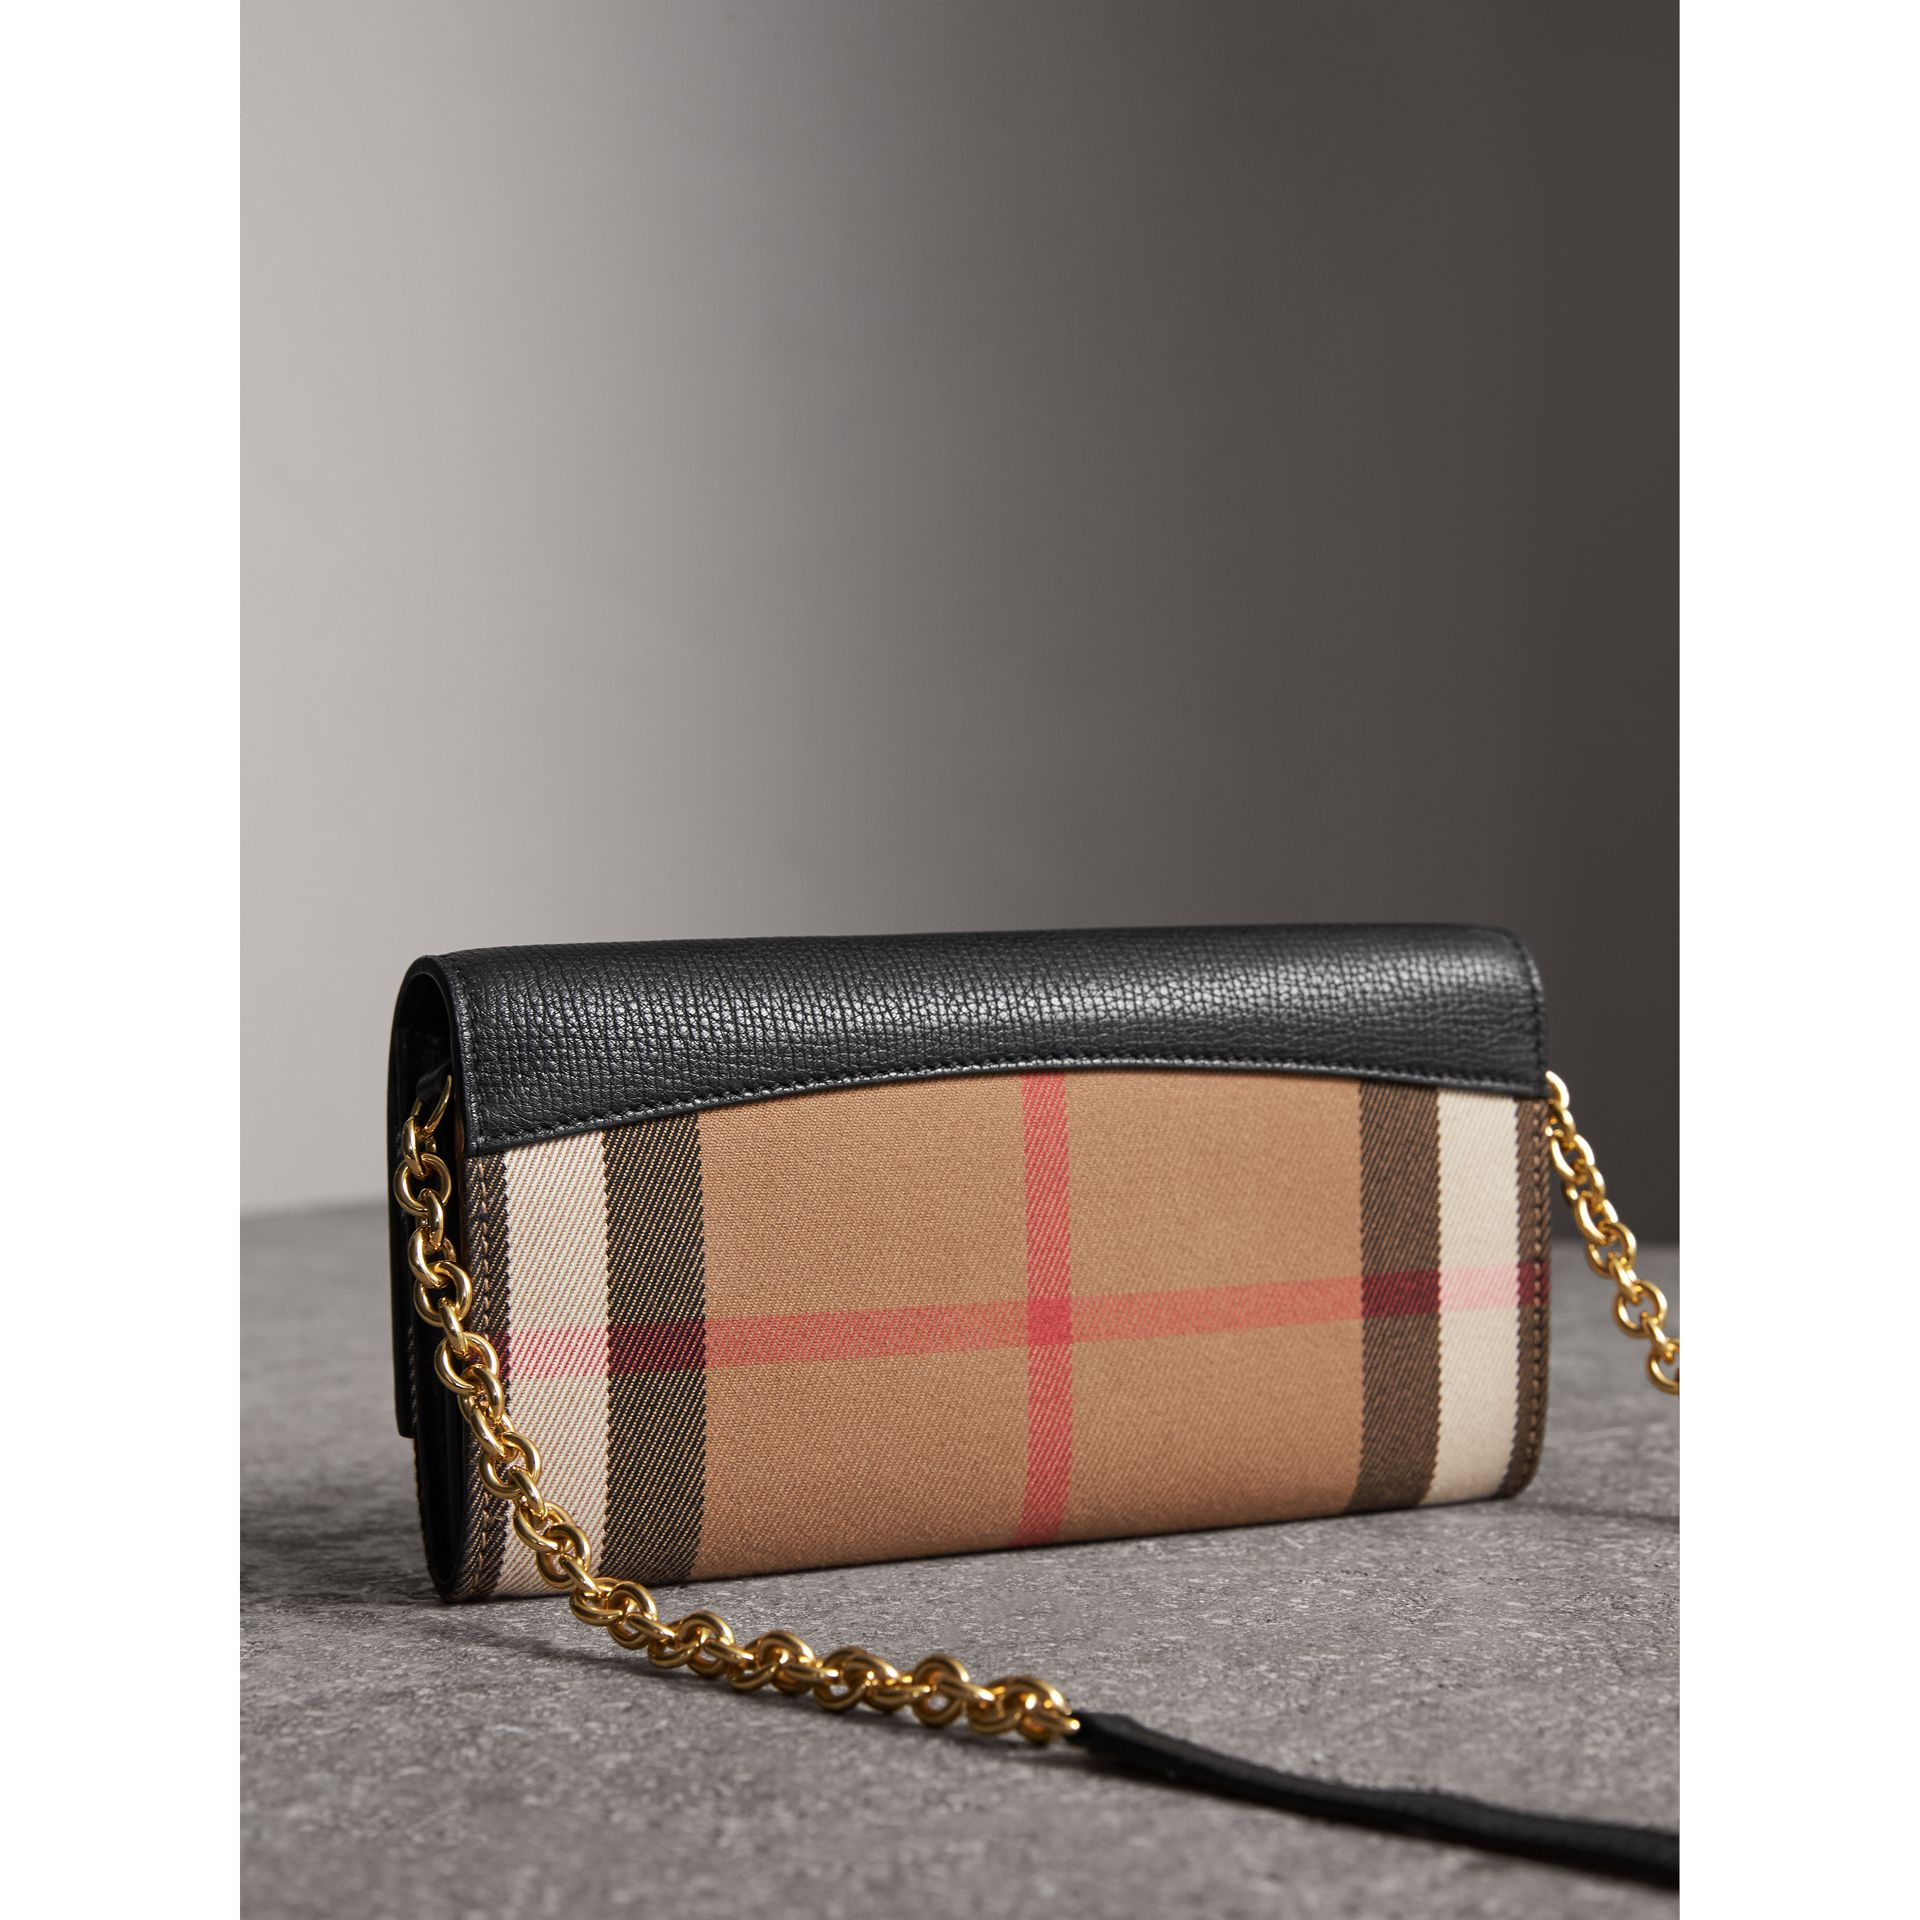 House Check and Leather Wallet with Chain in Black - Women | Burberry Australia - gallery image 4